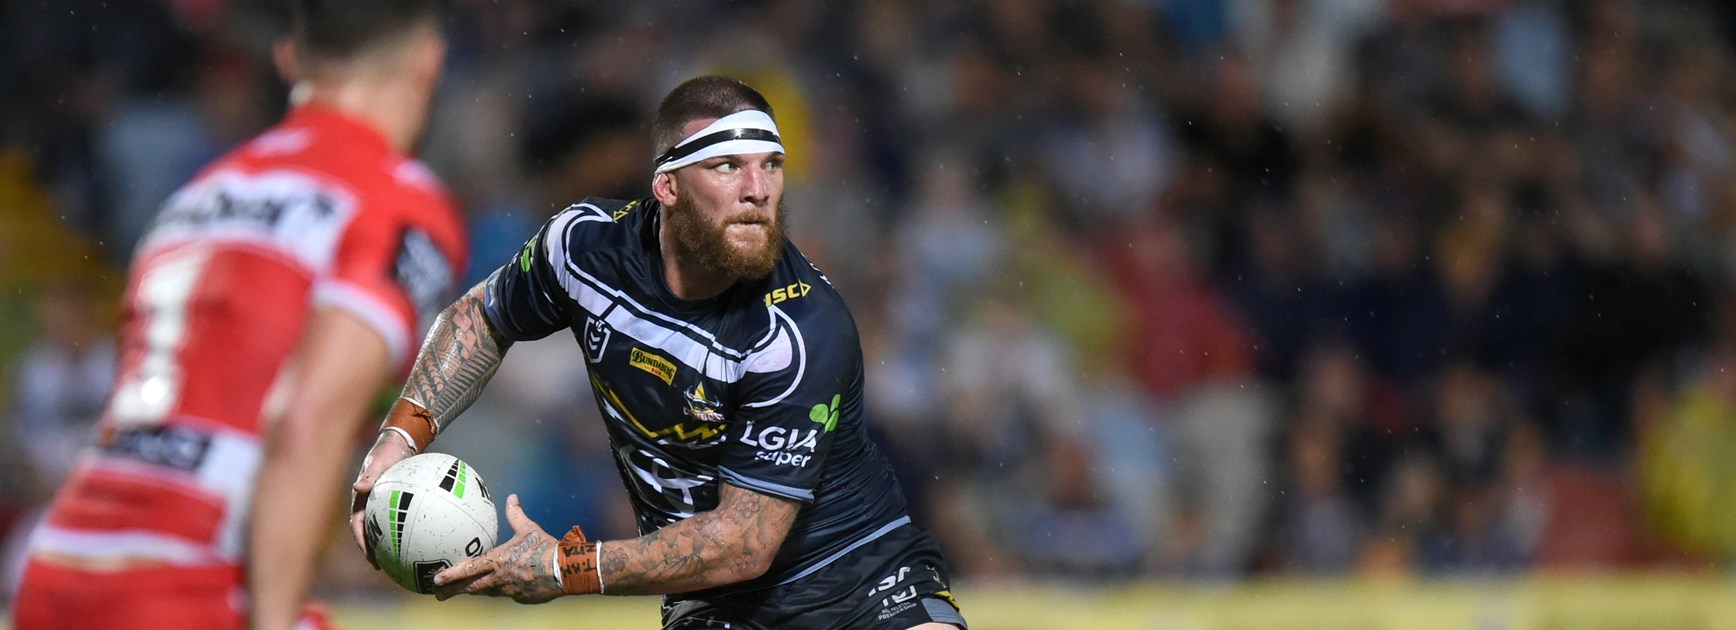 2019 season review: Josh McGuire